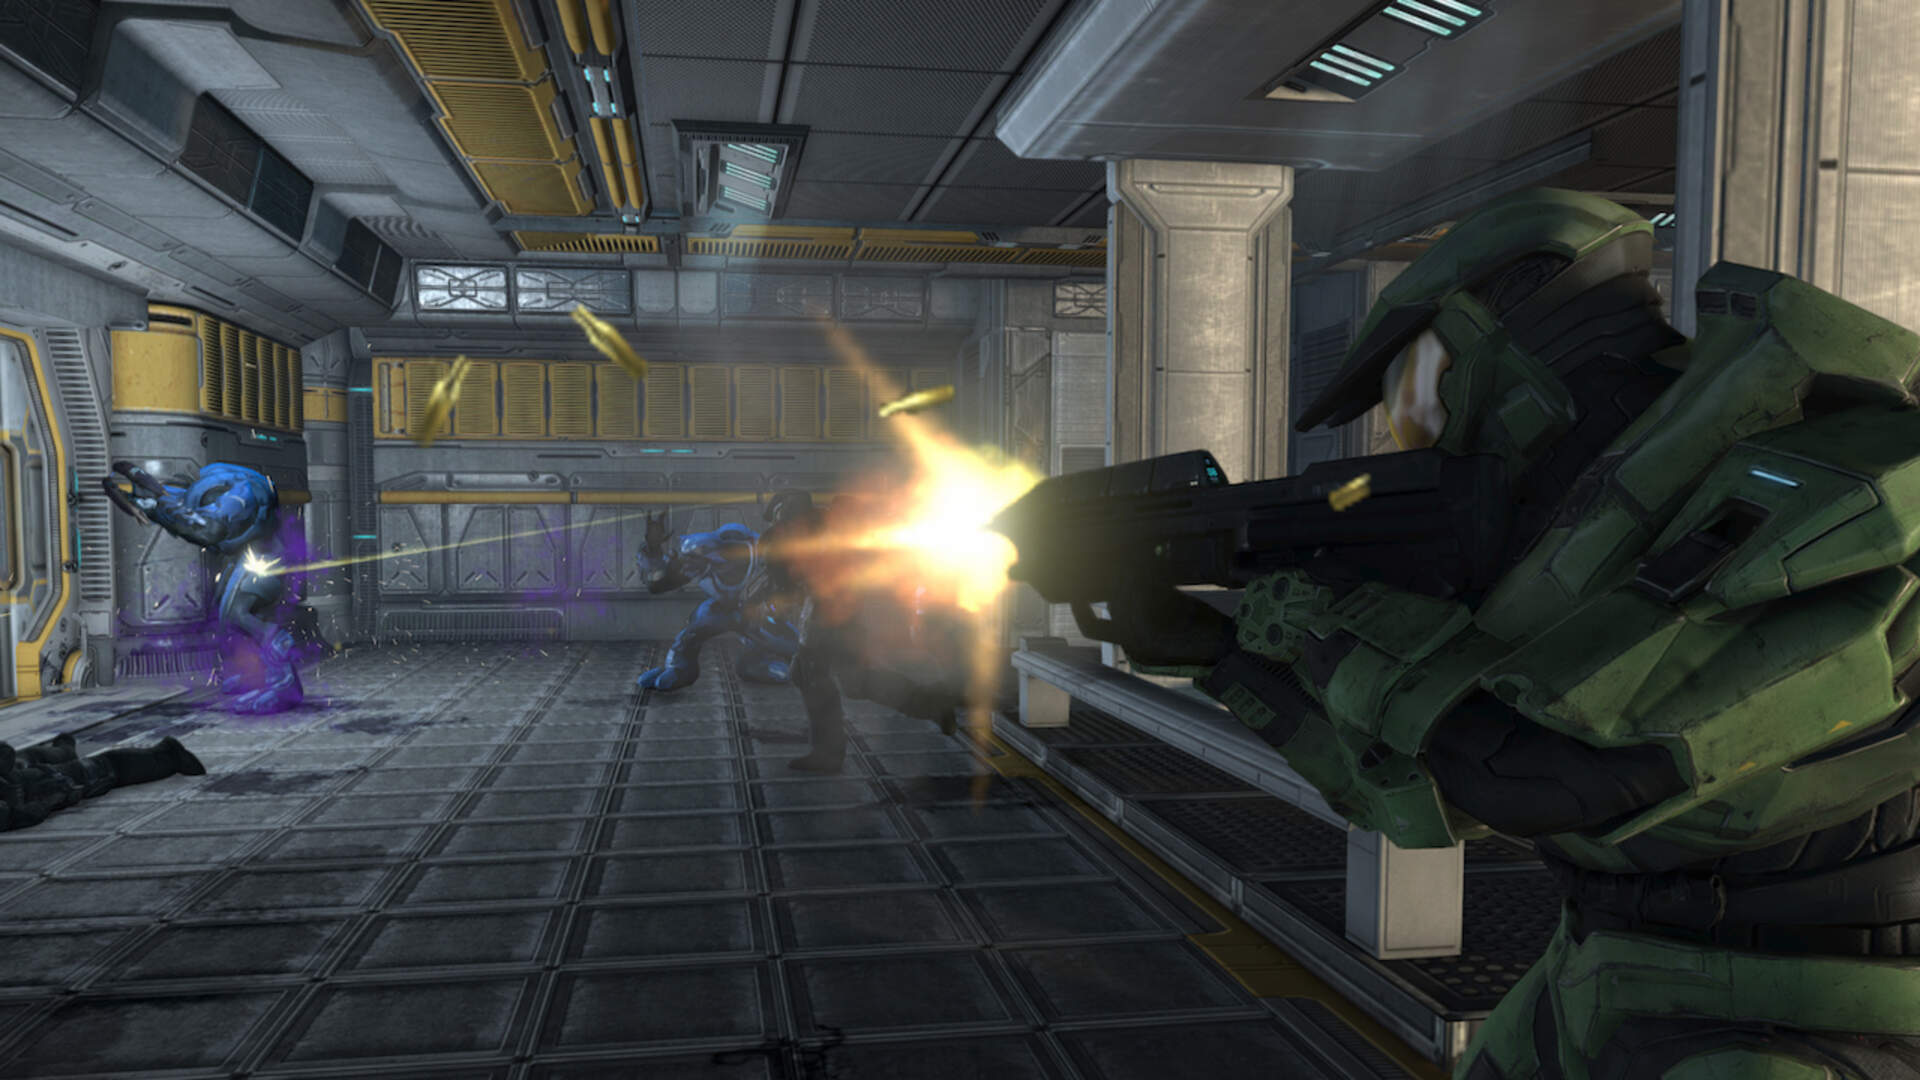 Halo's PC Remaster Gets a Surprise Drop on an Important Day in the Series' Canon